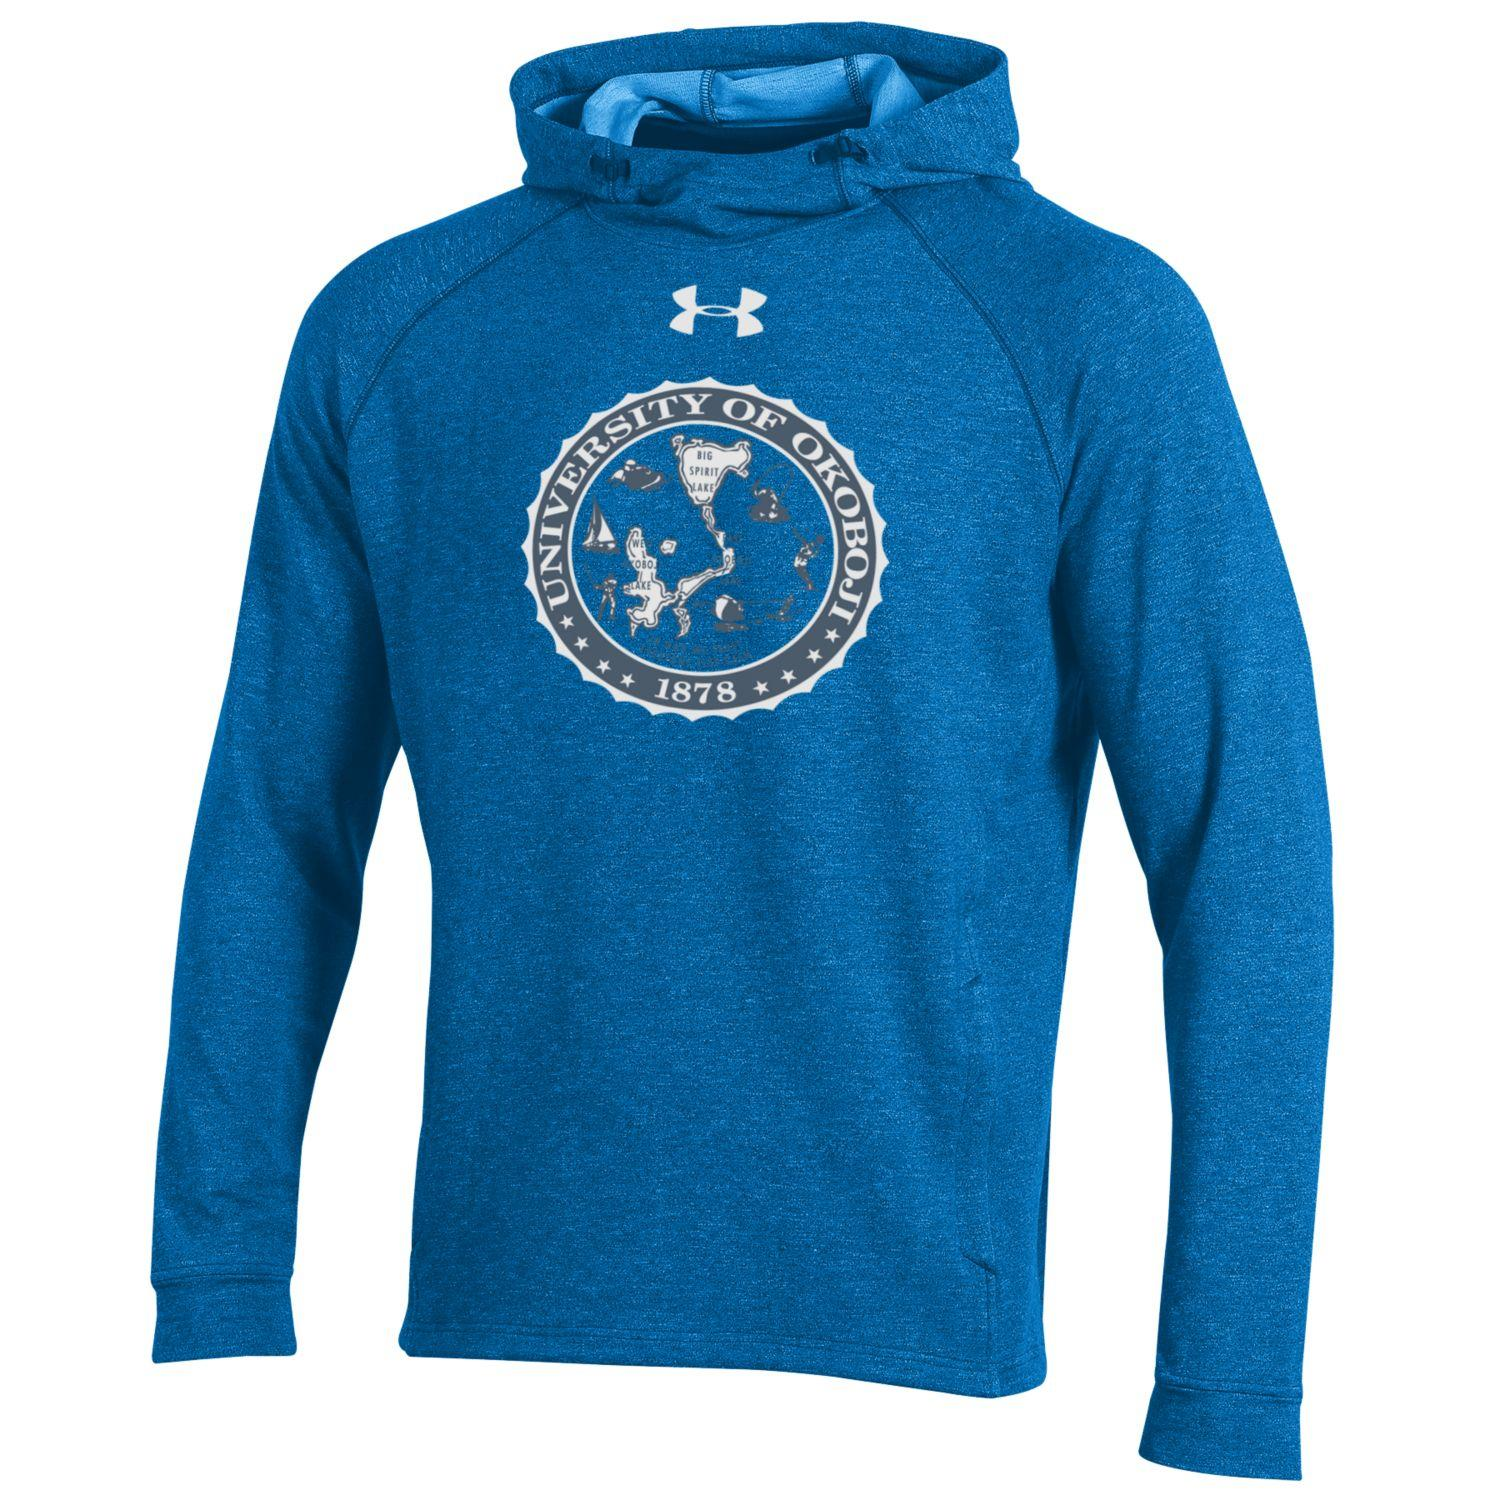 University of Okoboji Mock Neck Hoody - Royal Blue